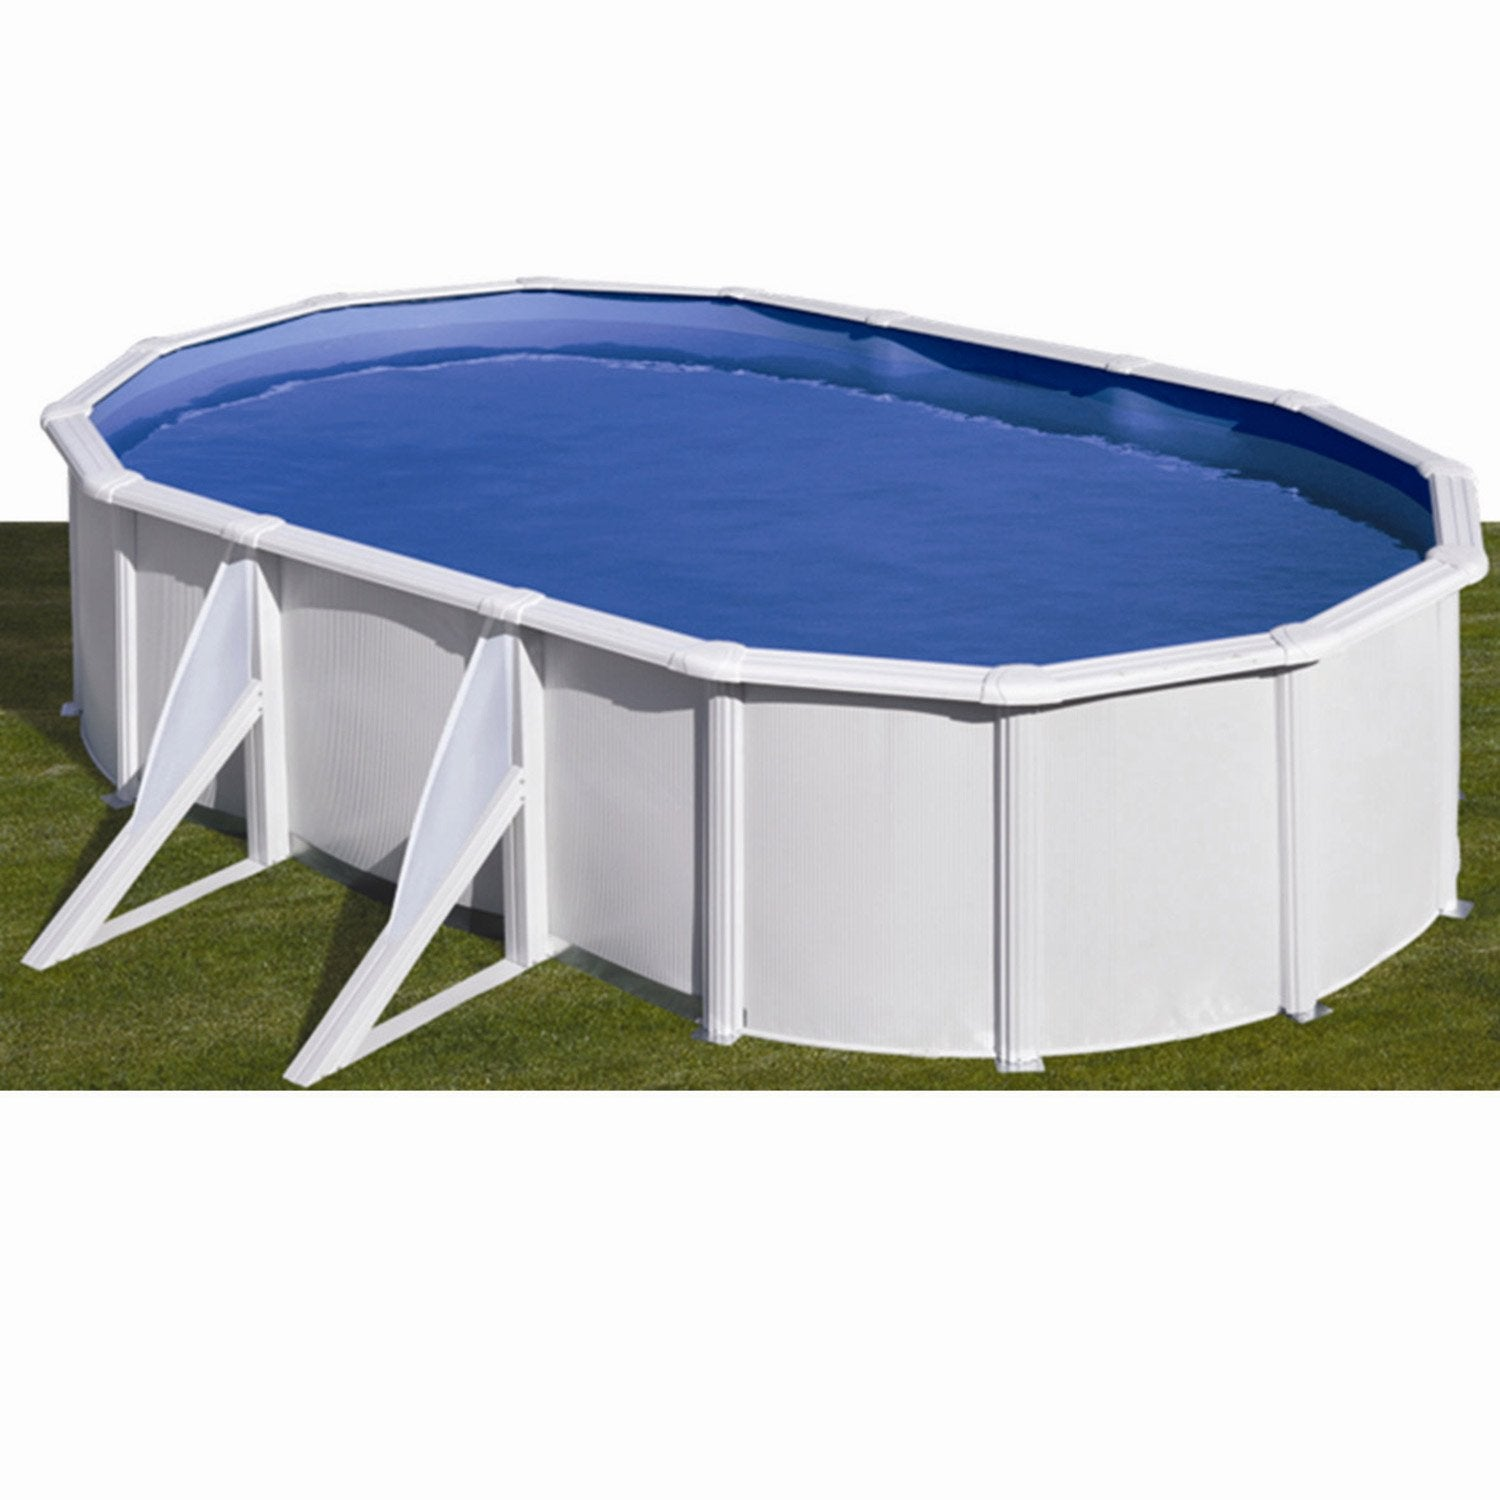 Piscine hors sol acier san clara l 5 x l 3 x h 1 2 m for Video x piscine